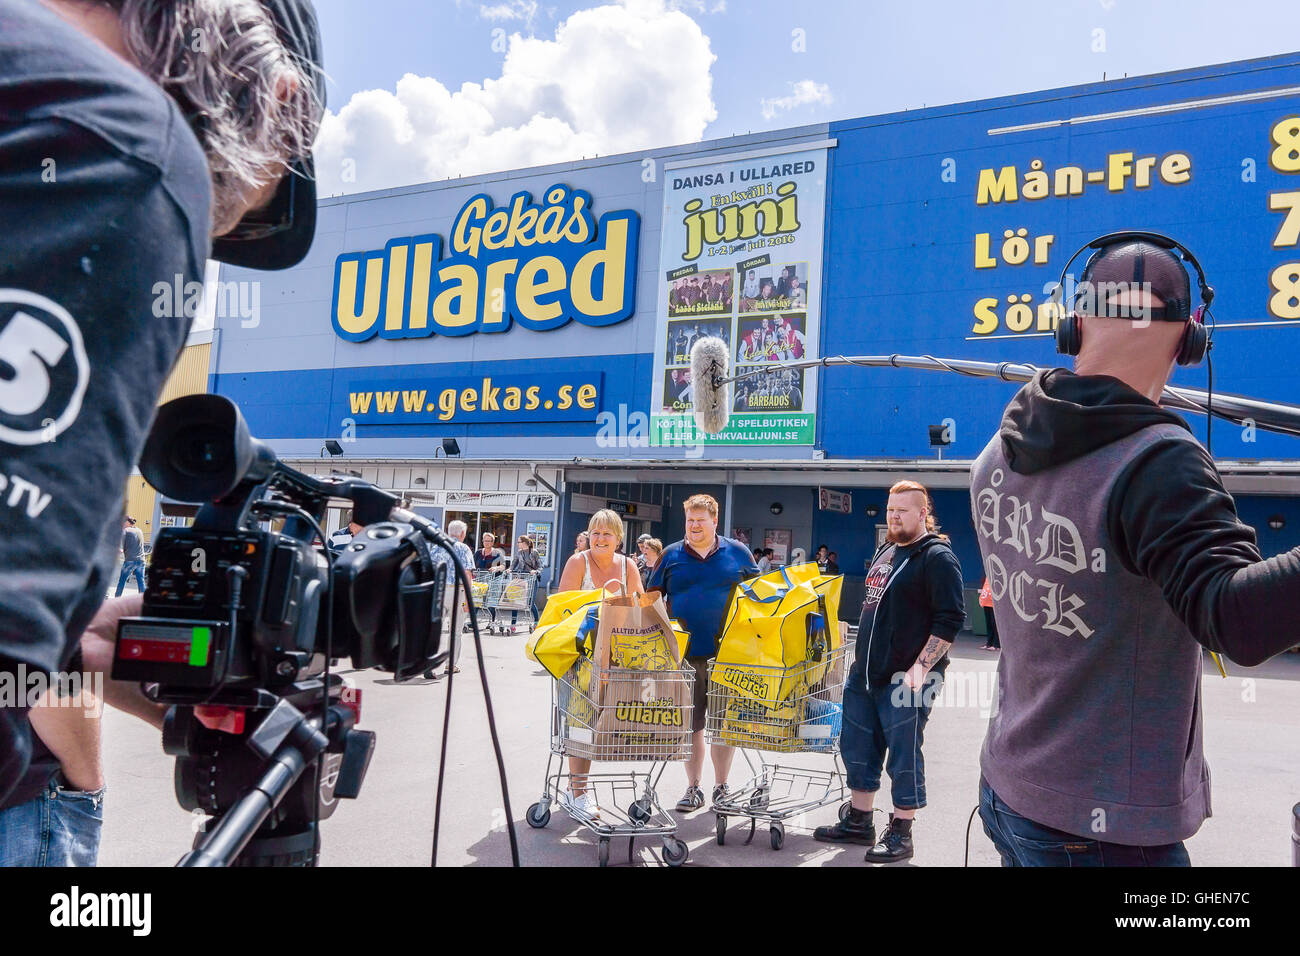 TV team from Chanel 5 Sweden, recording in front of the department store Gekas at Ullared, Sweden - Stock Image